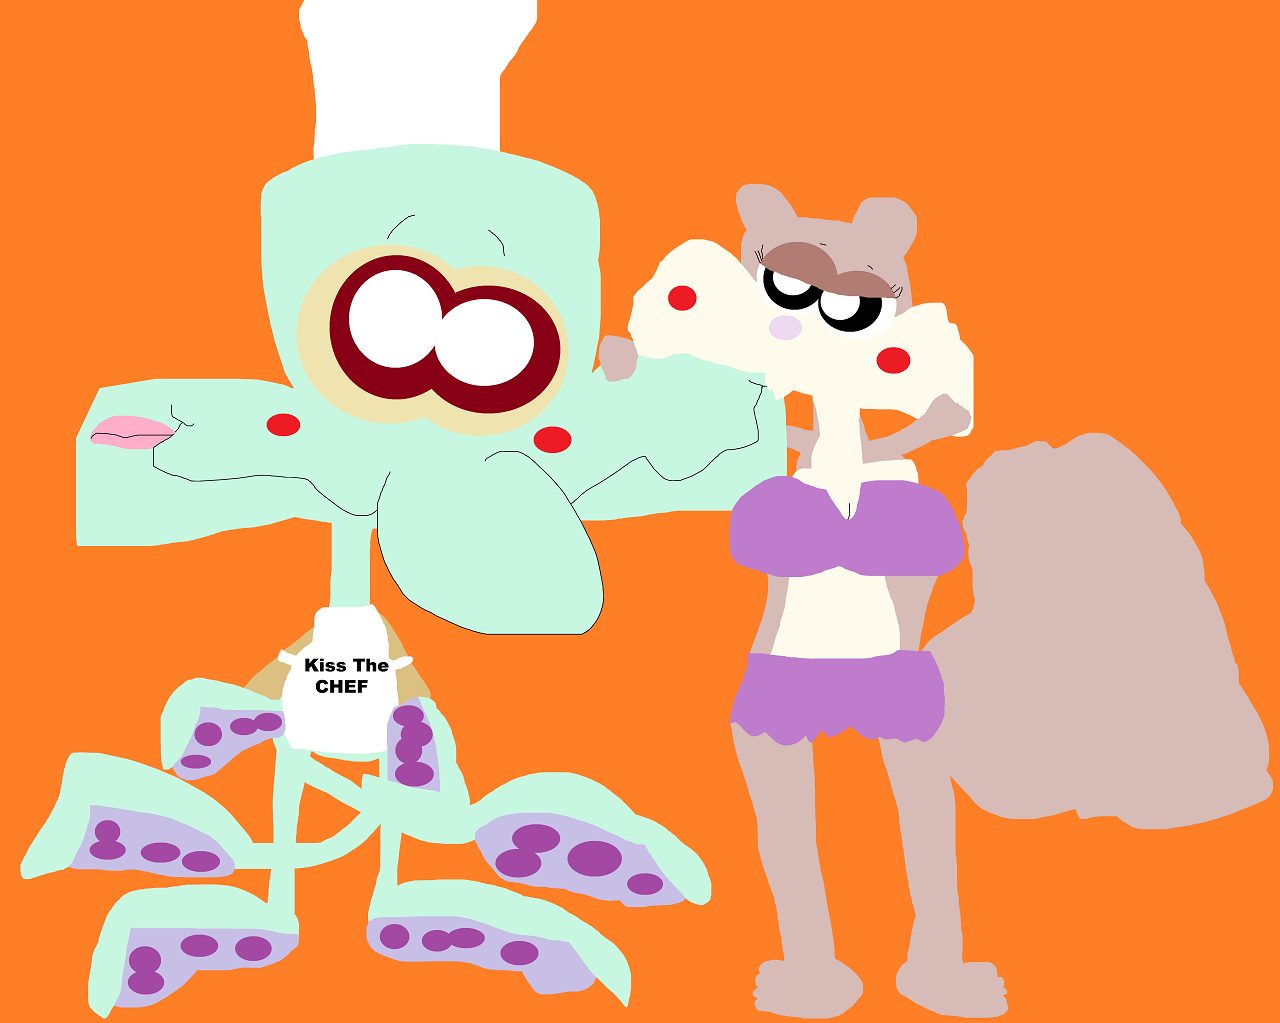 It Pays To Advertise Squidward And Sandy^^ by Falconlobo